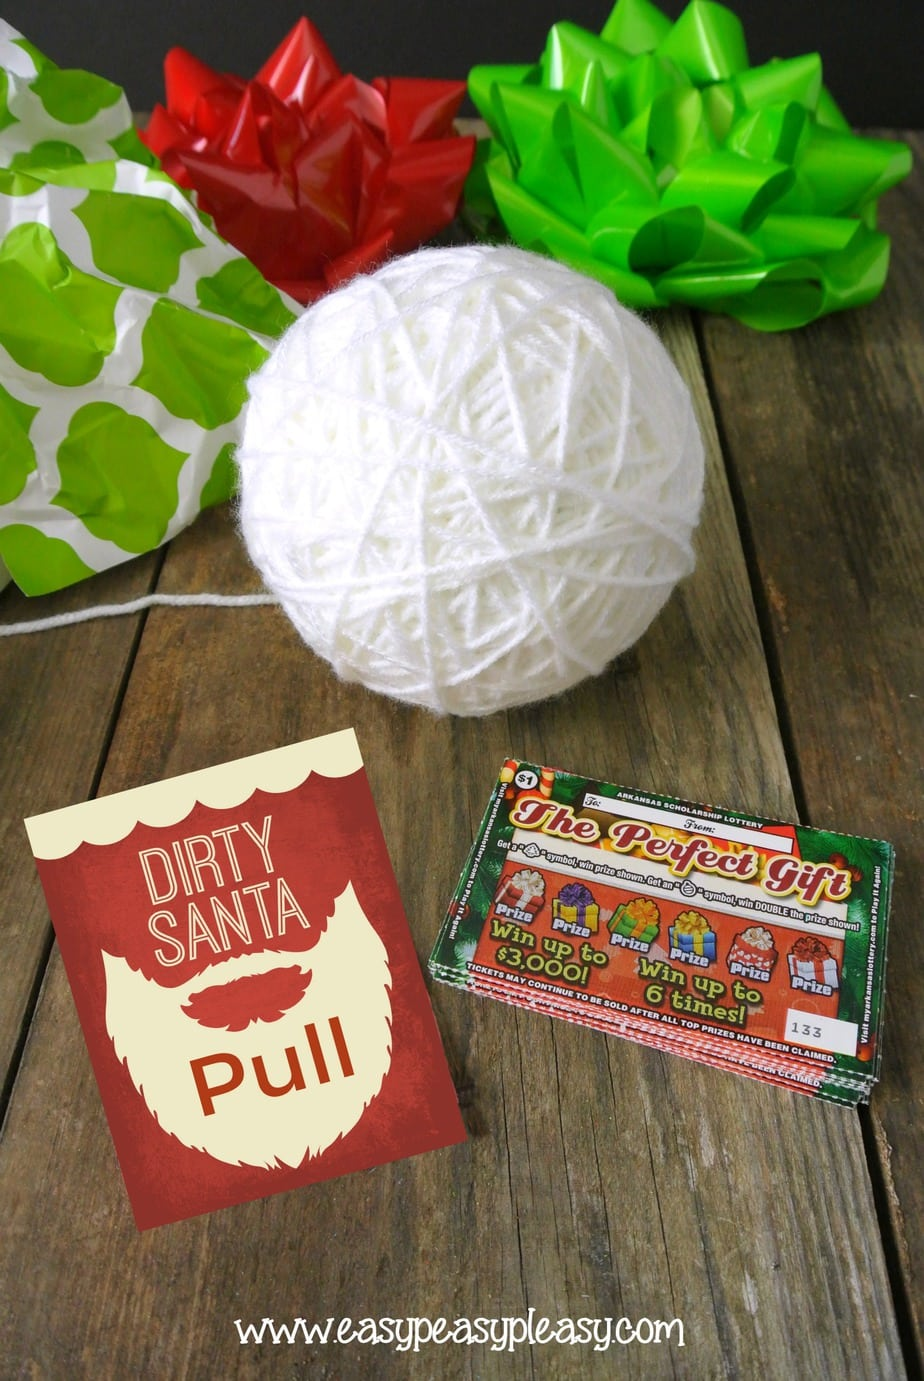 Pull the string to find The Perfect Gift. Check out these Dirty Santa Gift Ideas using Lottery Tickets and get the free printable gift tags.